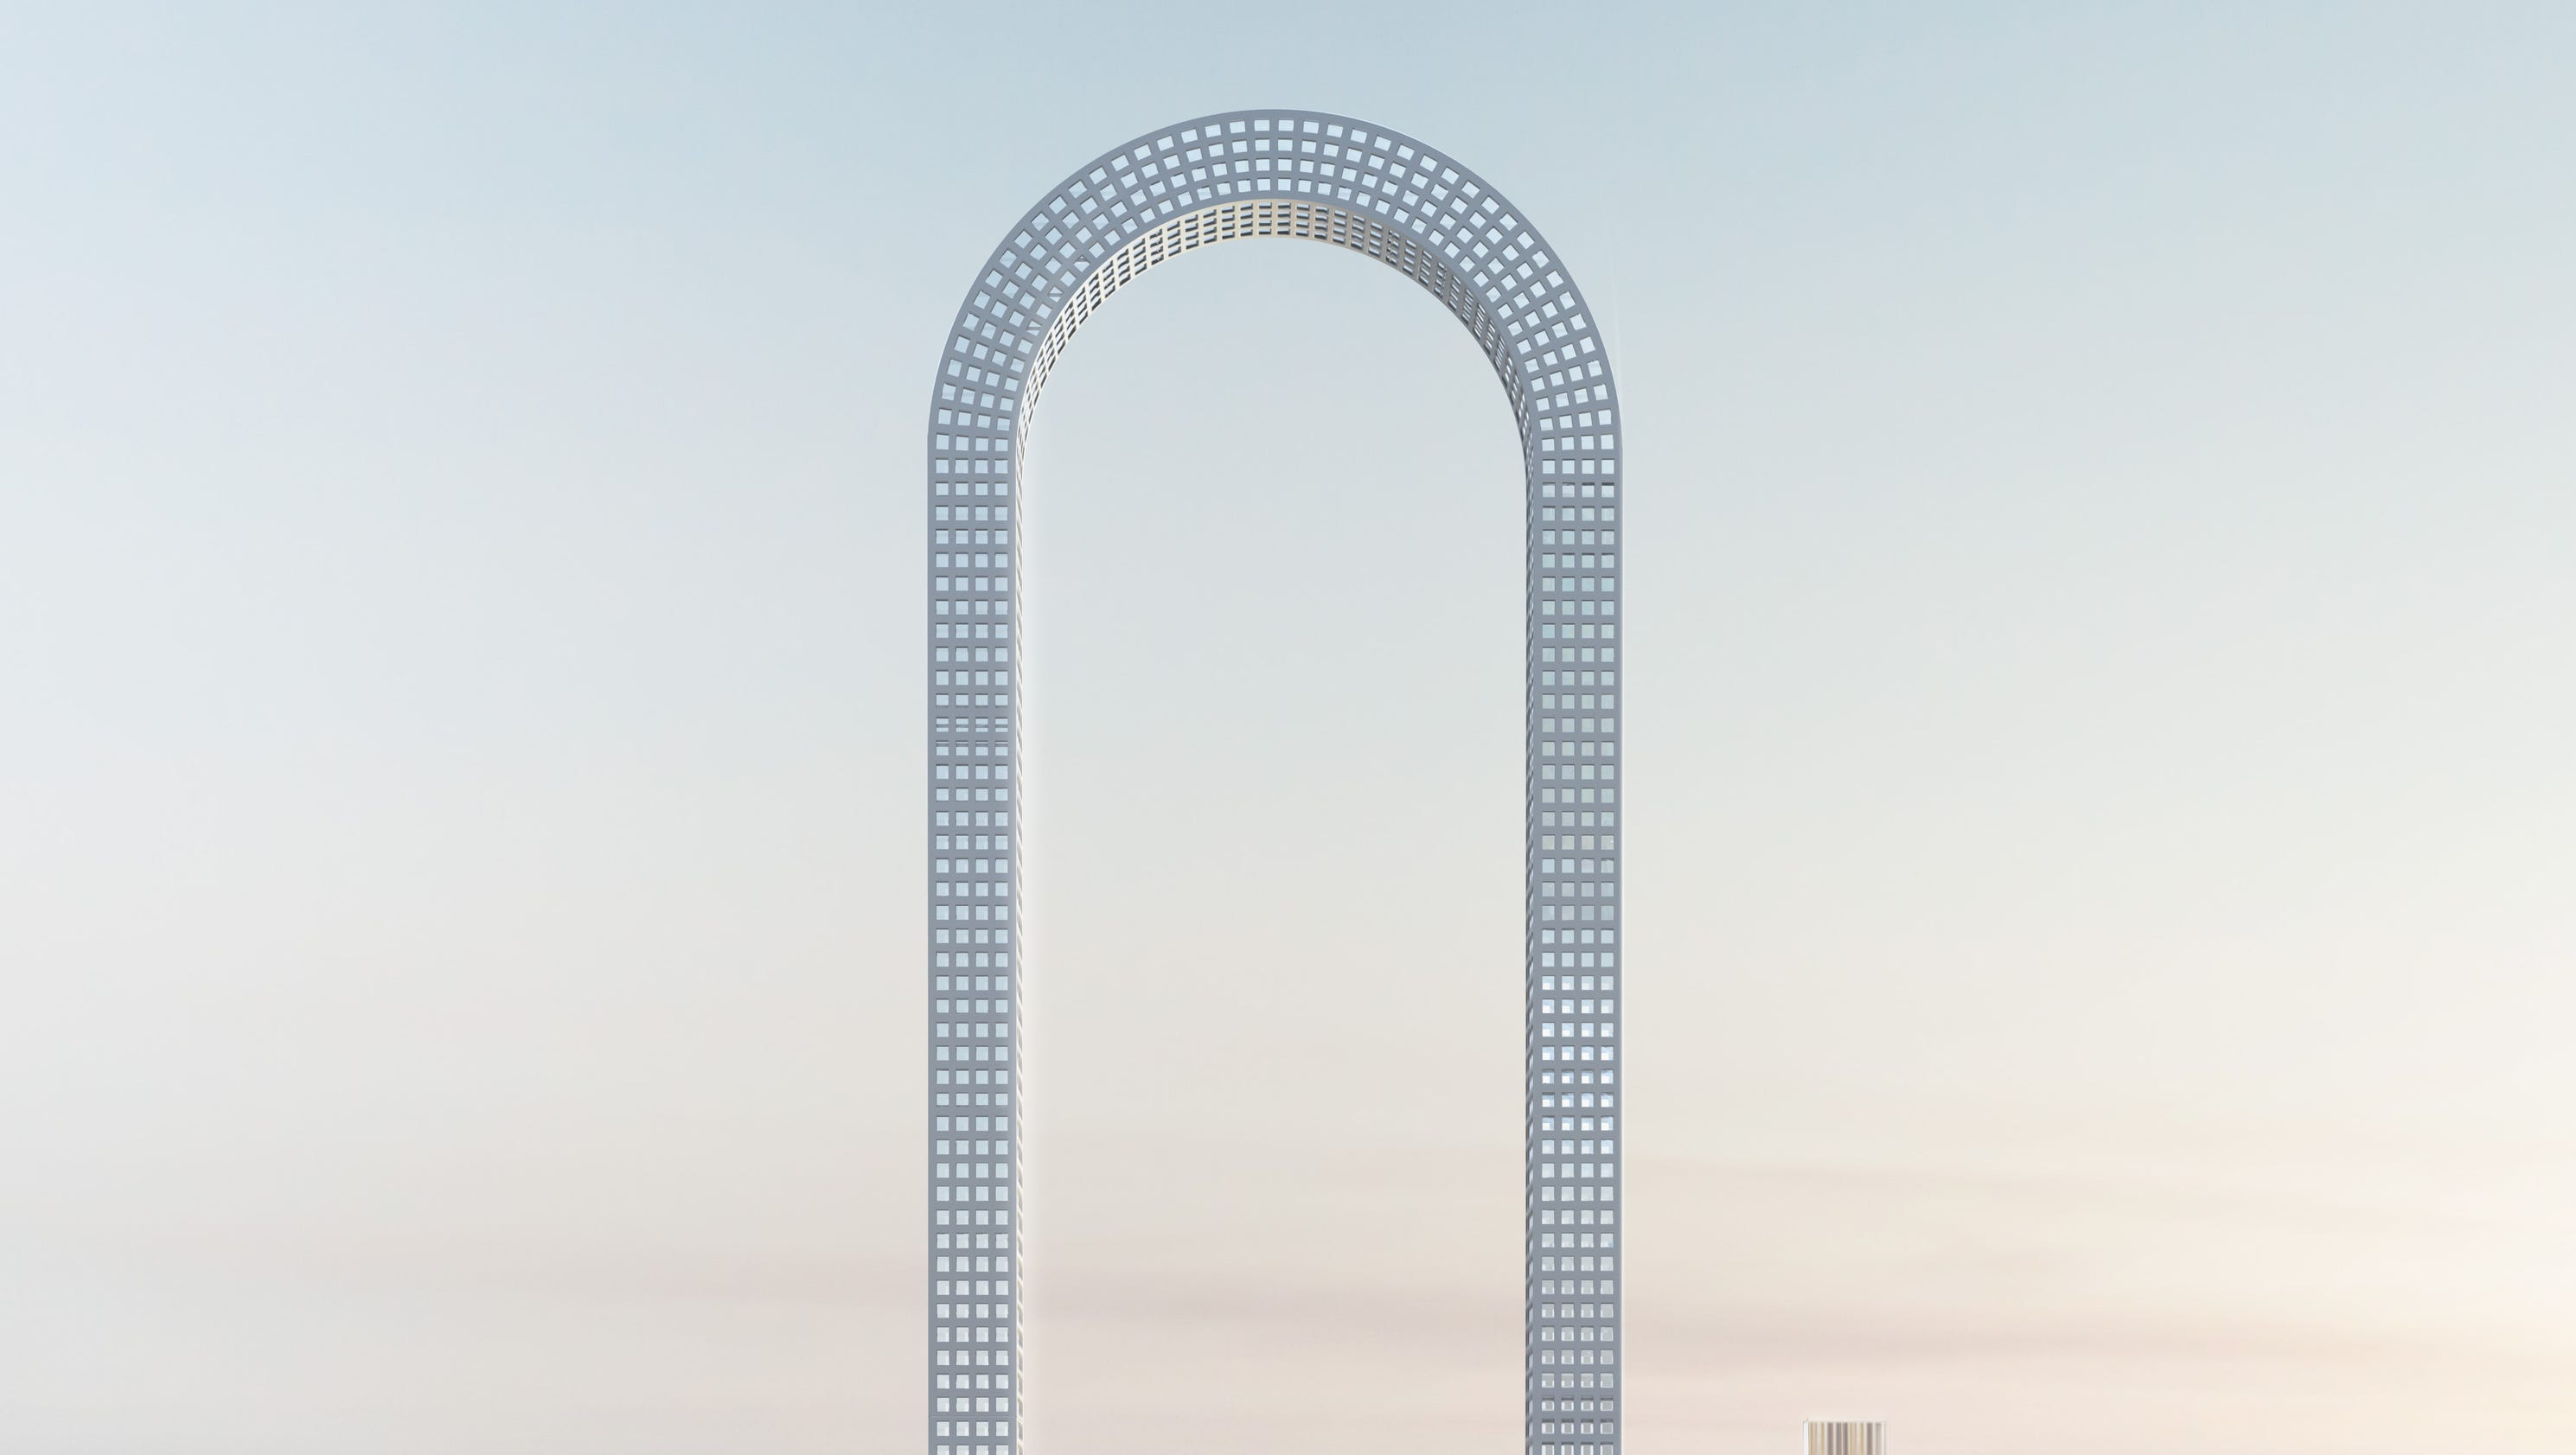 u-shaped nyc skyscraper would be 'longest in the world'